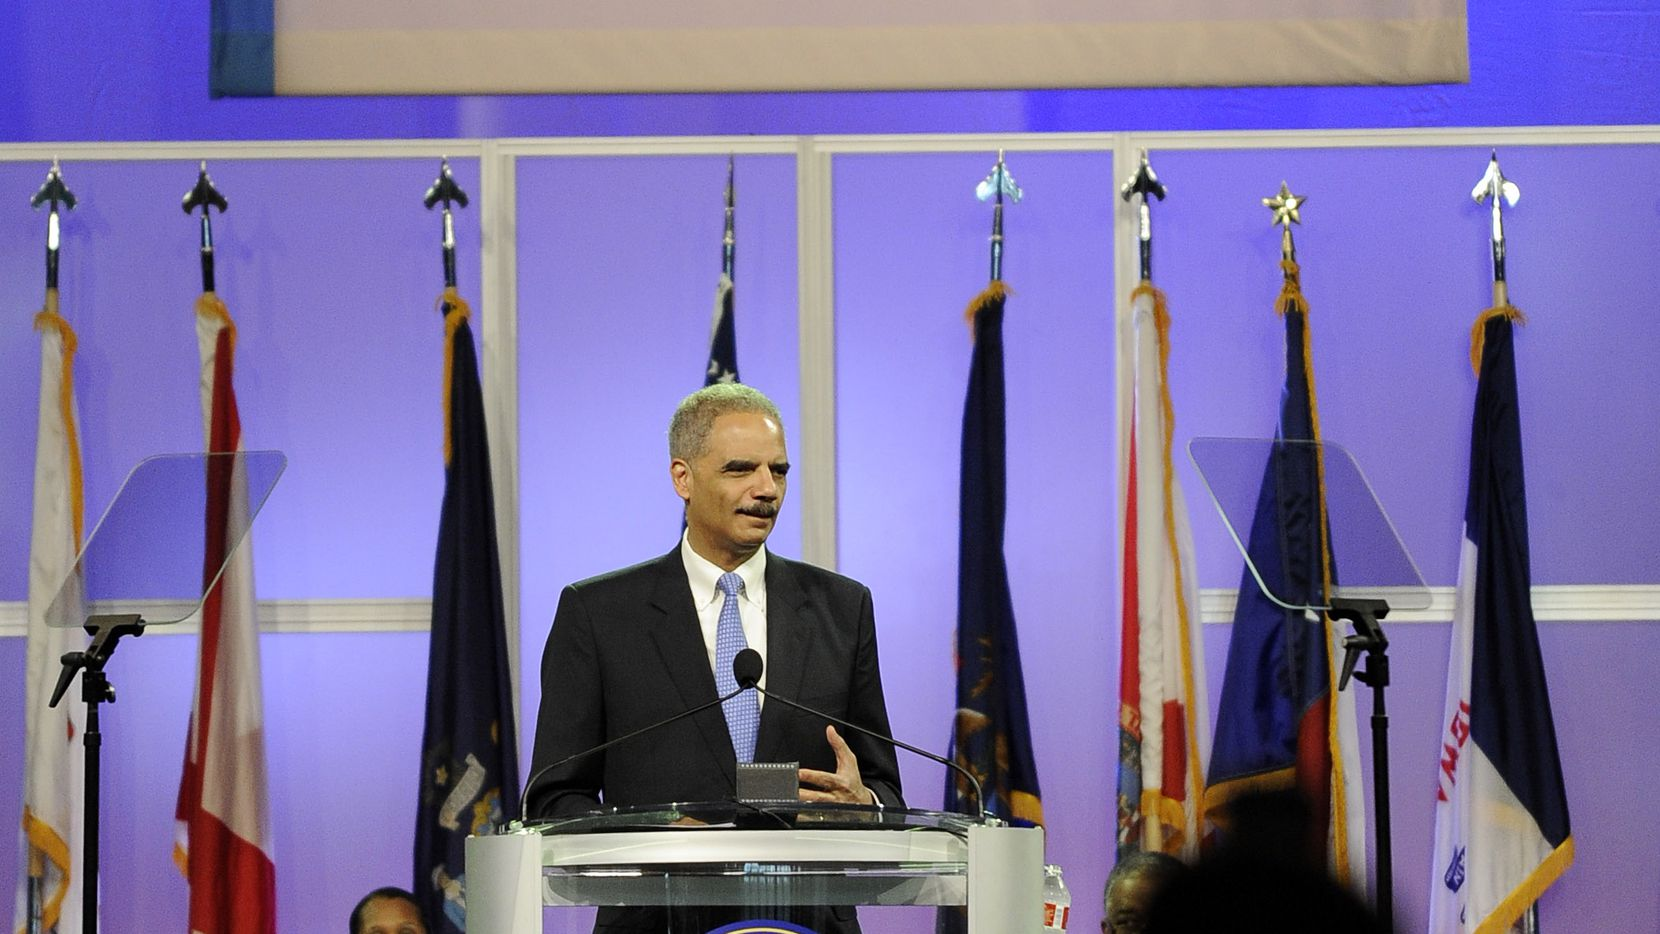 U.S. Attorney General Eric Holder speaks at the NAACP annual convention July 10, 2012, in Houston. Holder says he opposes a new photo ID requirement in Texas elections because it would be harmful to minority voters.